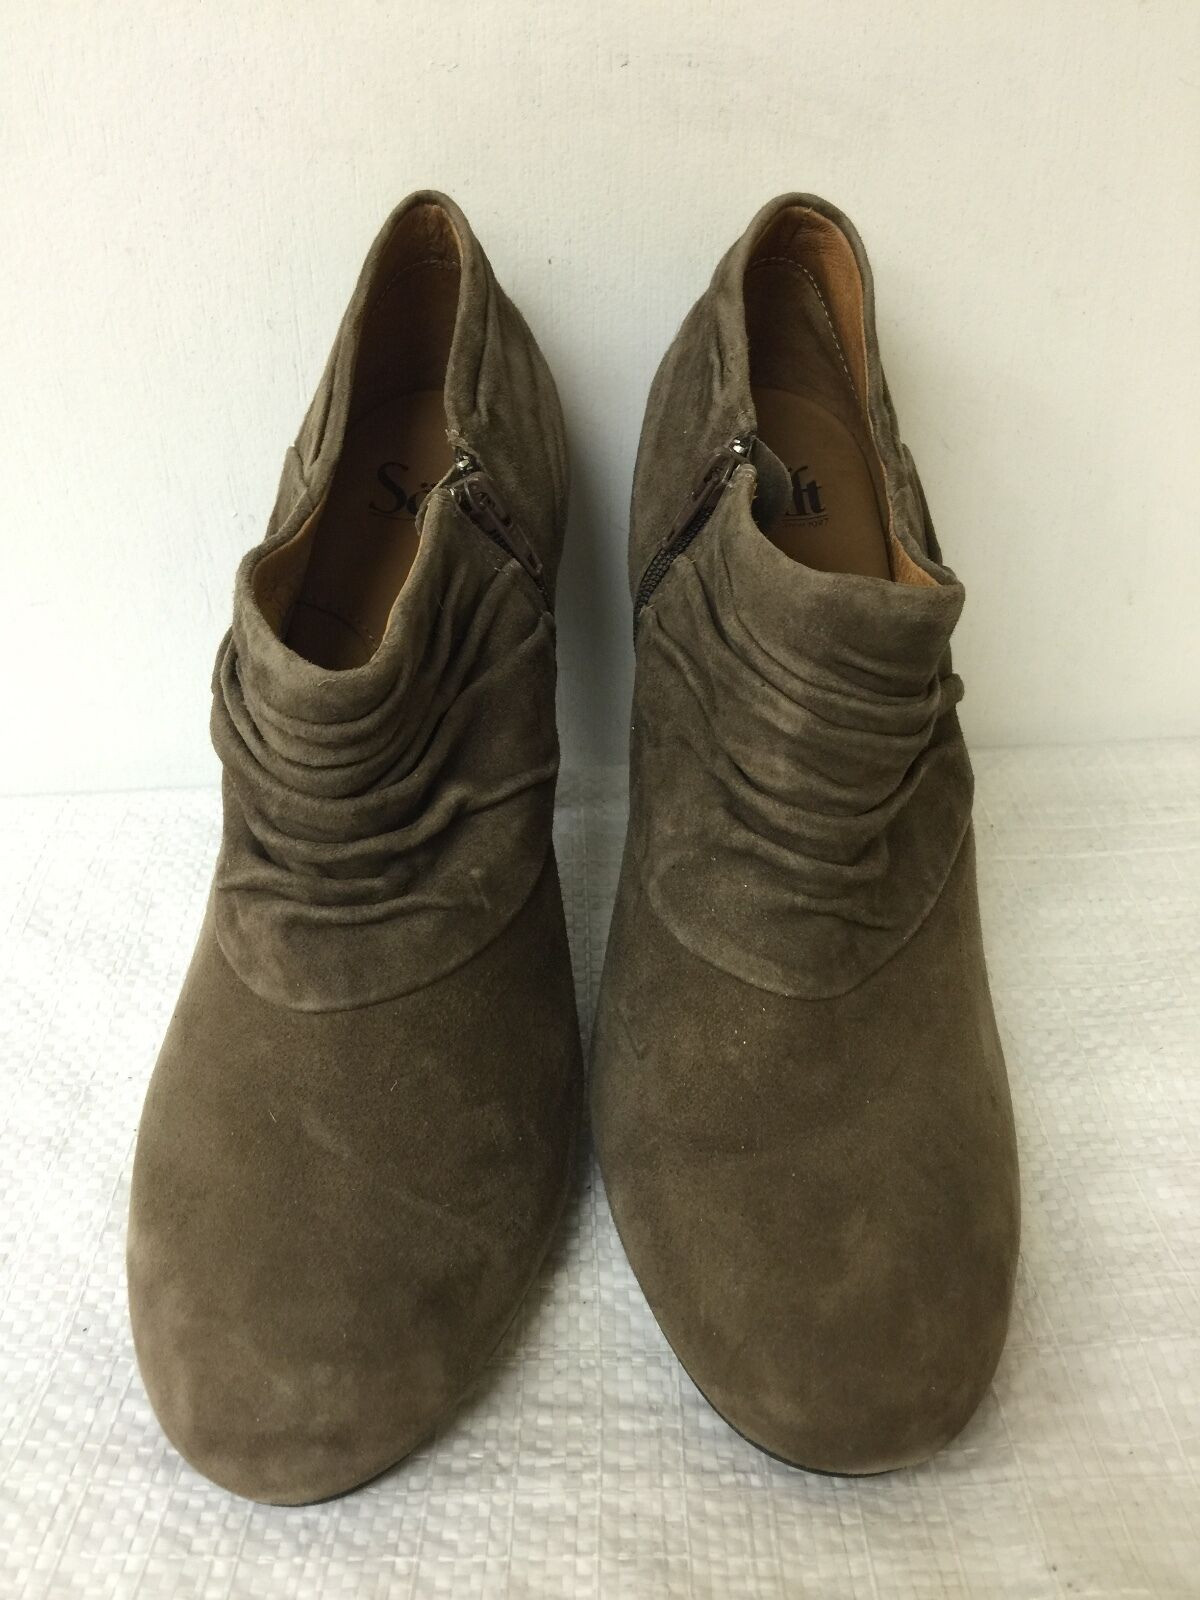 Sofft women Taupe Suede Heels Ankle Boots heel Shoes size 8.5M